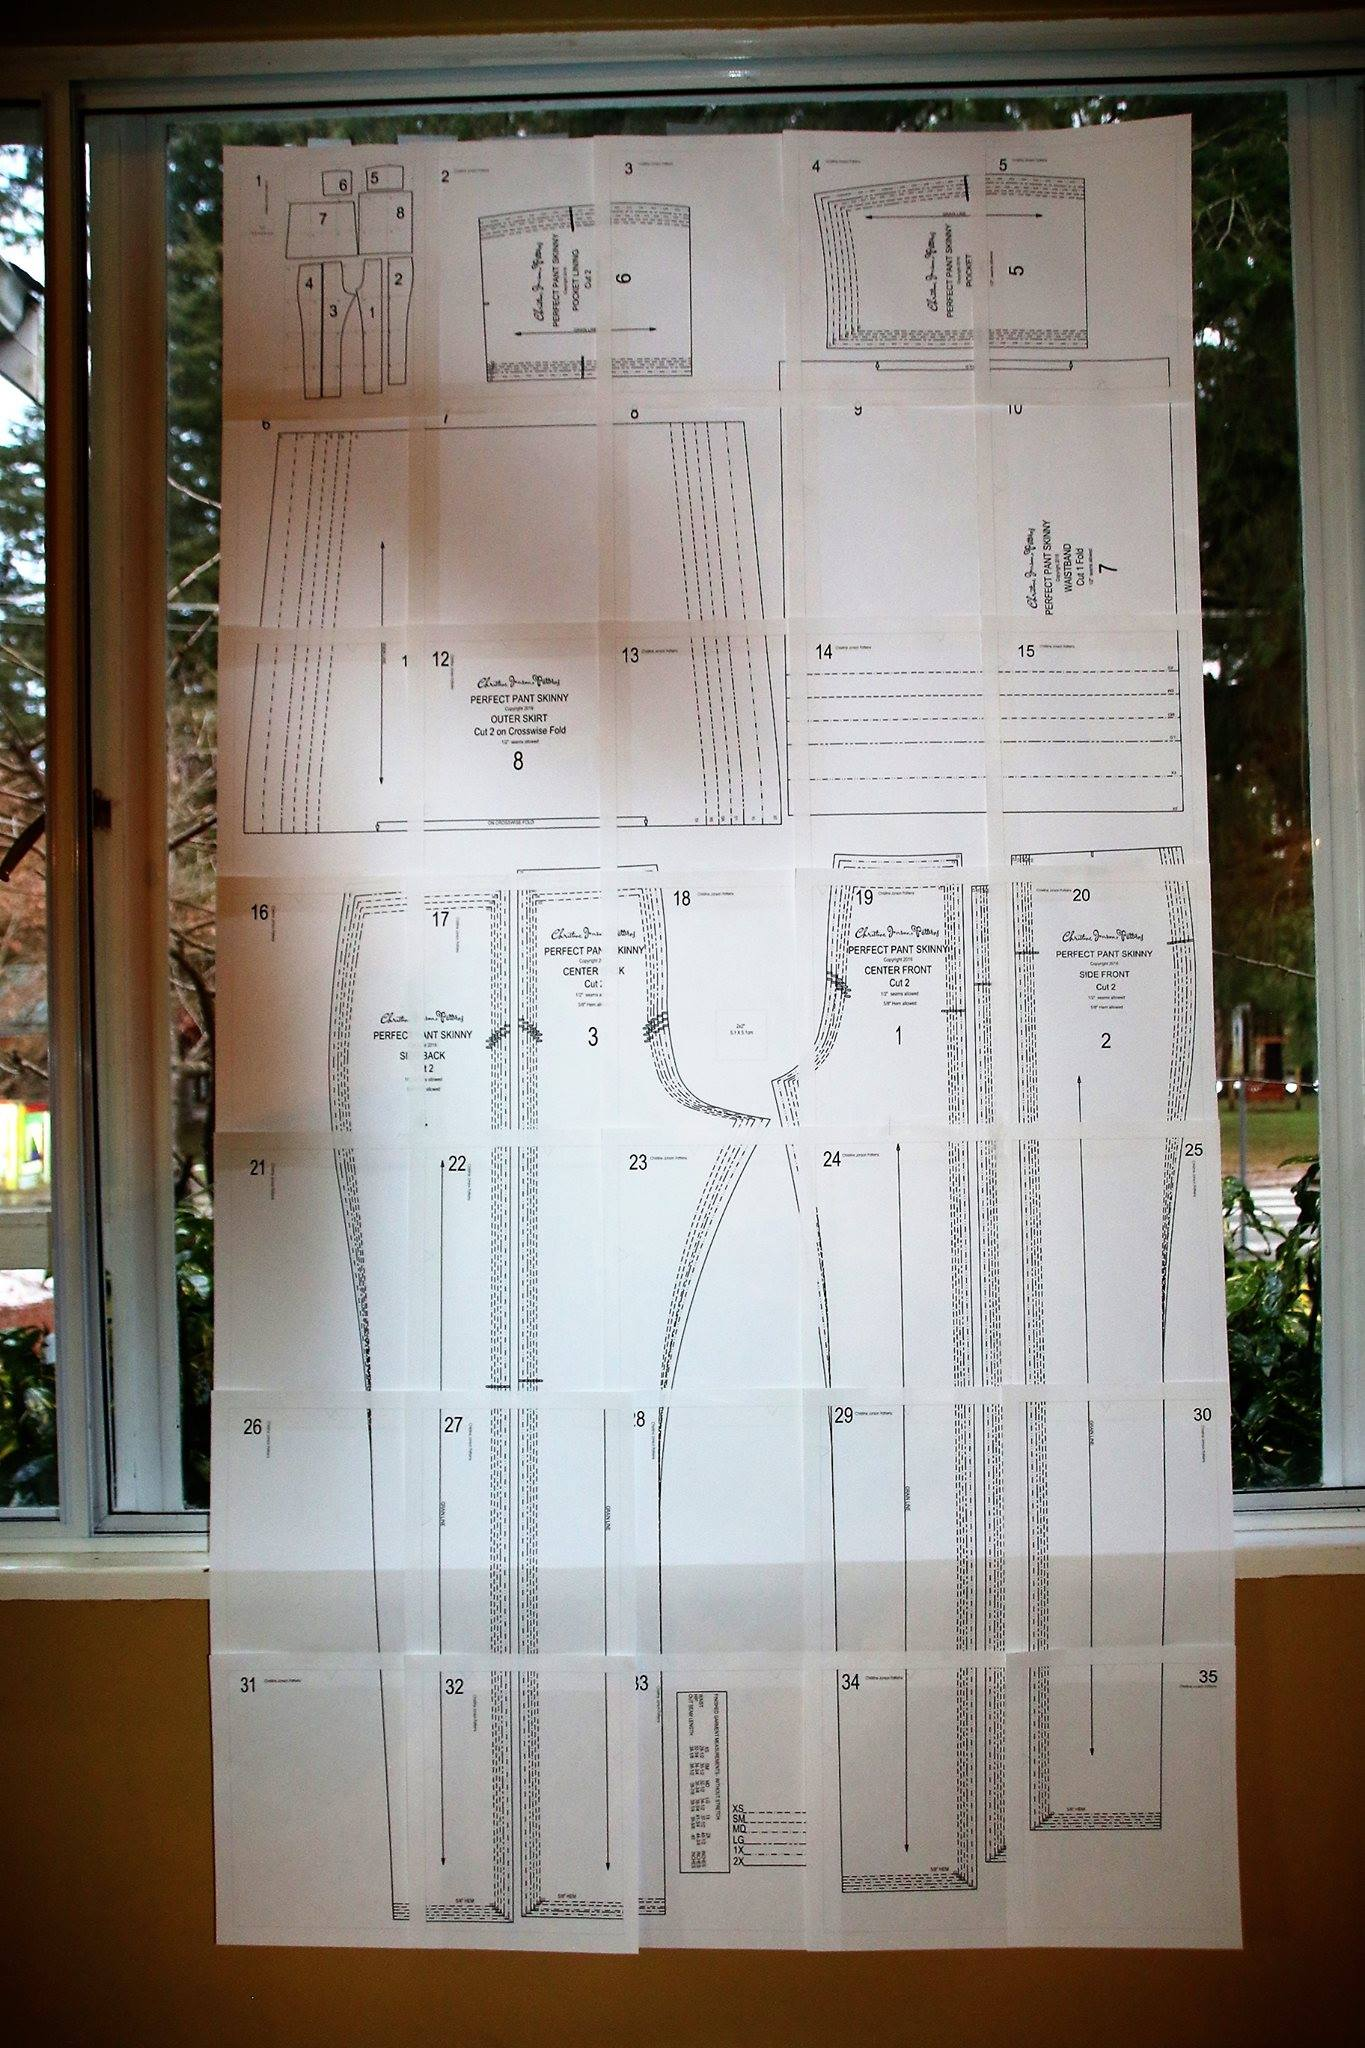 Downloadable sewing patterns like the Perfect Pants, shown here, can easily be printed, matched and taped up even if your printer cuts off one of the borders. Putting it up on your window or glass door like this is an easy way to see how the pattern lines up as you tape.